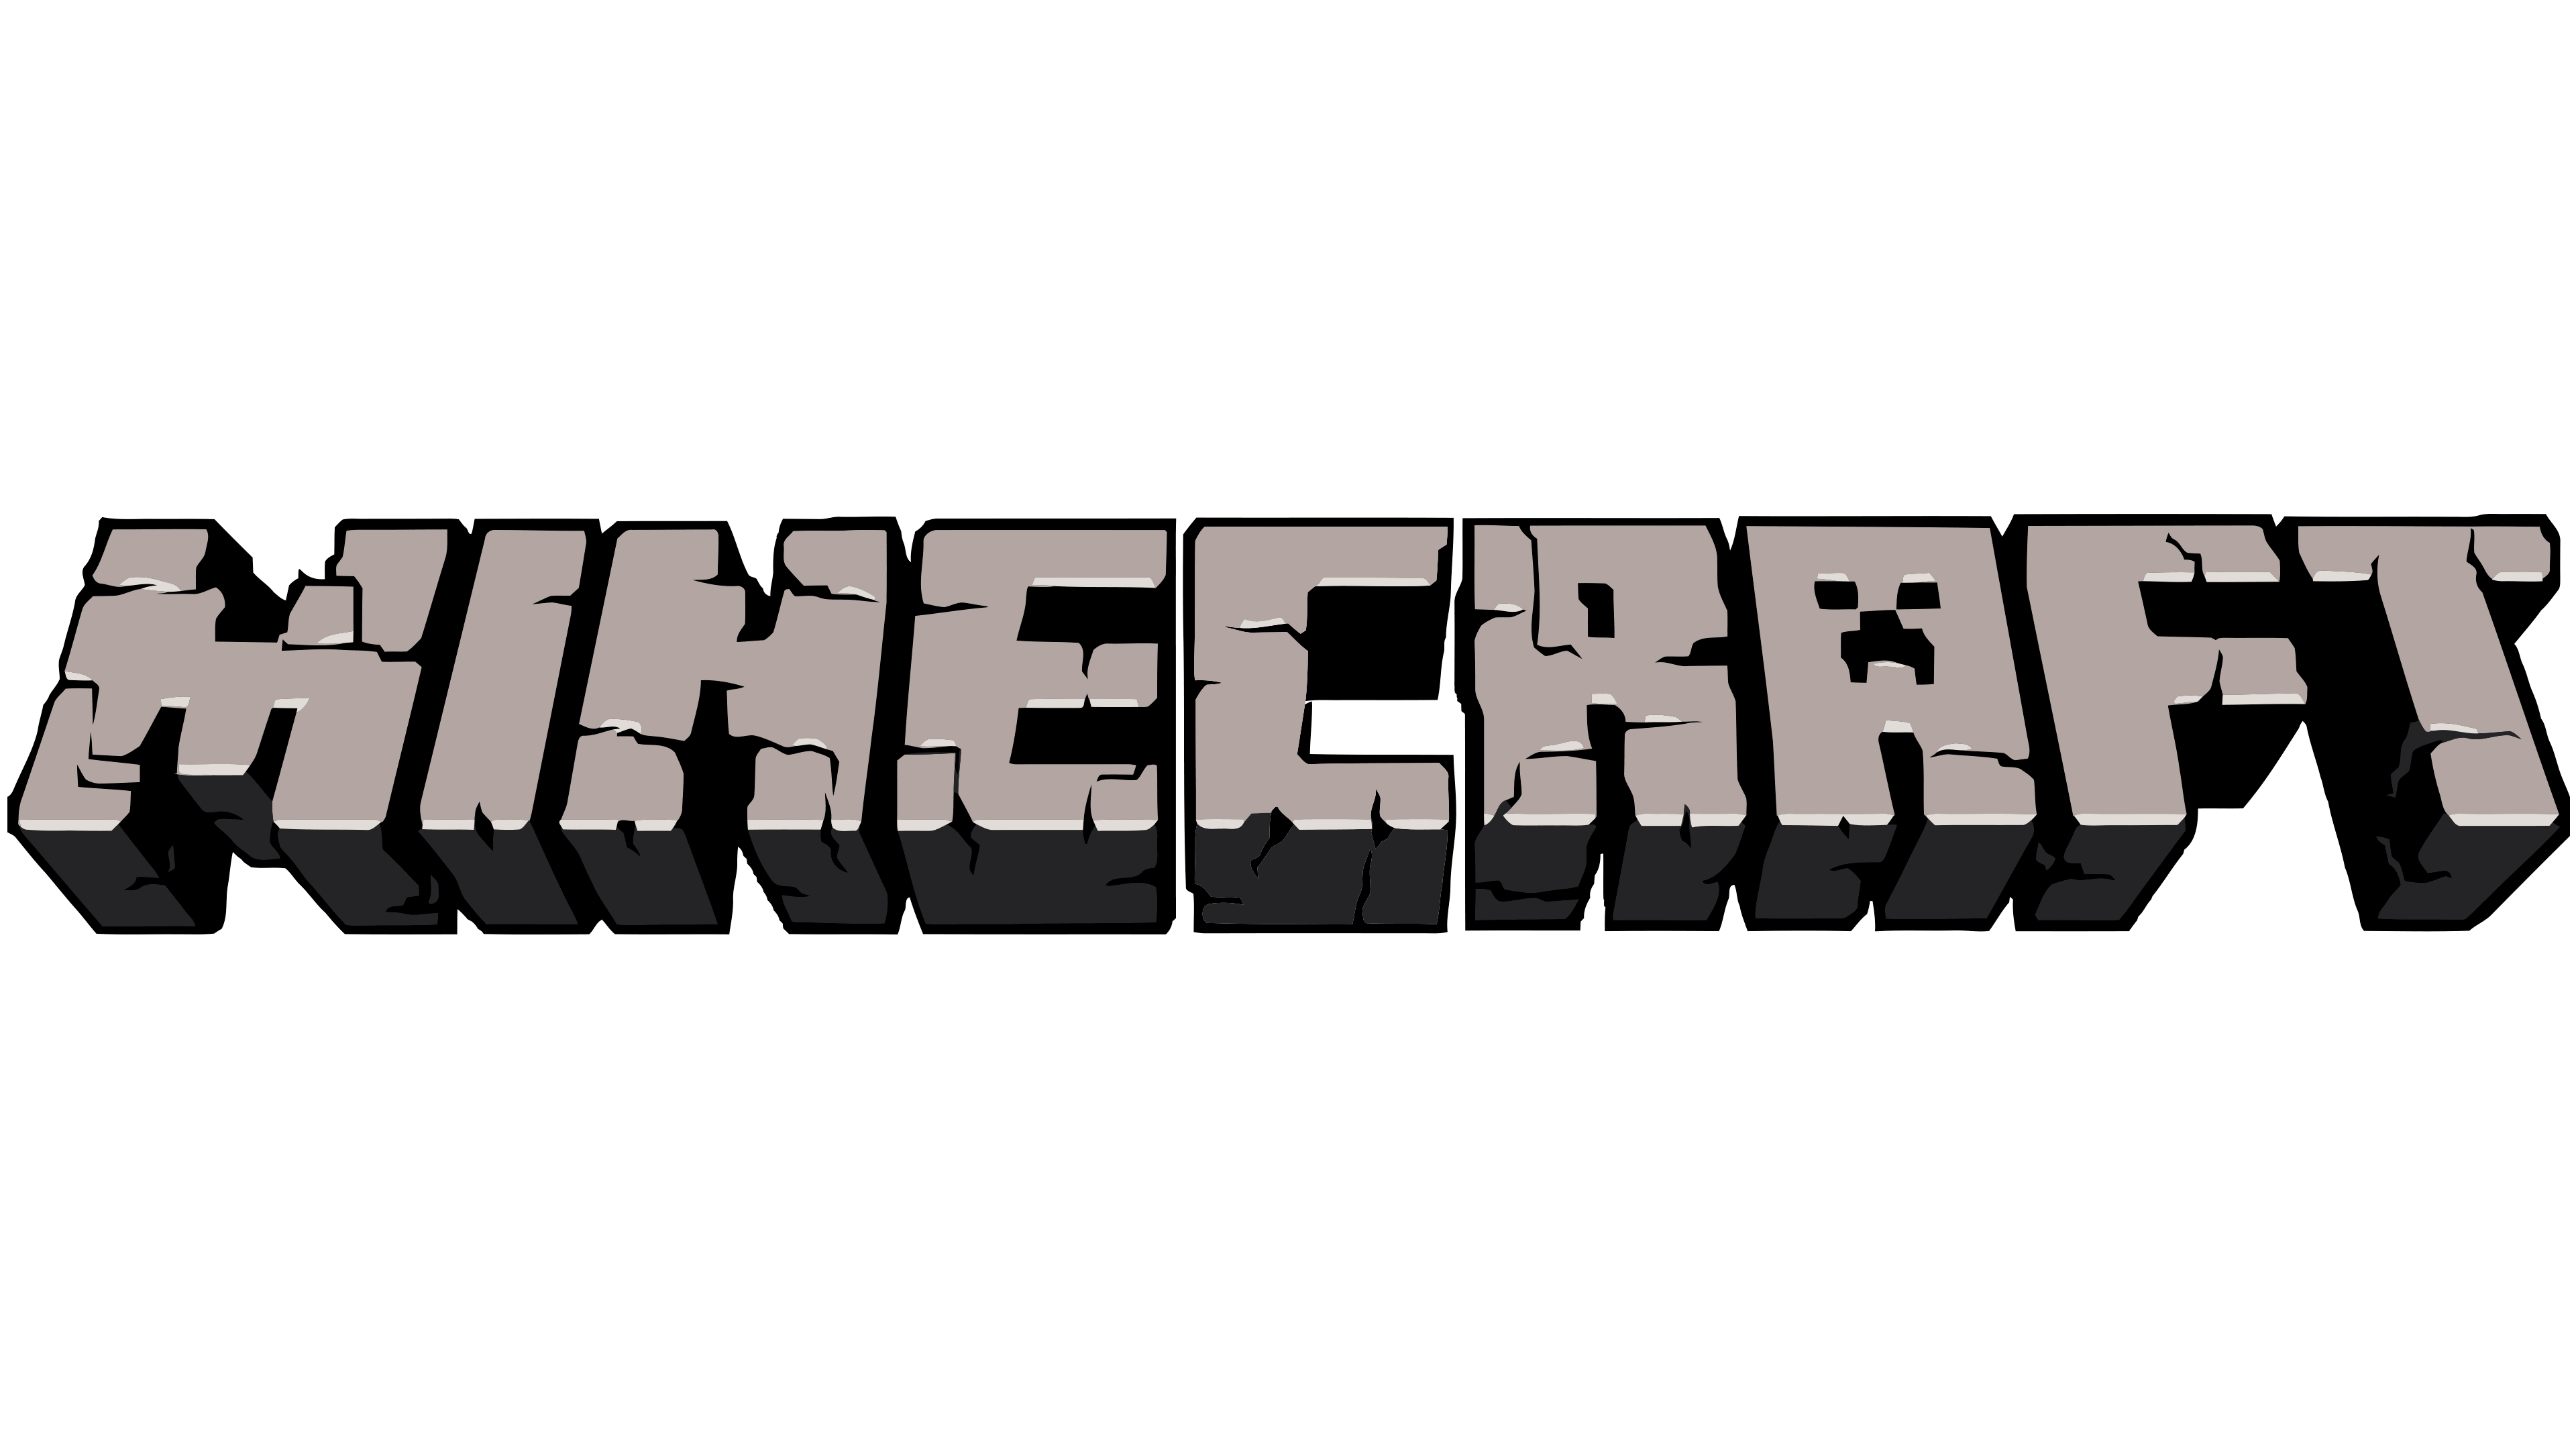 Télécharger photo logo minecraft png